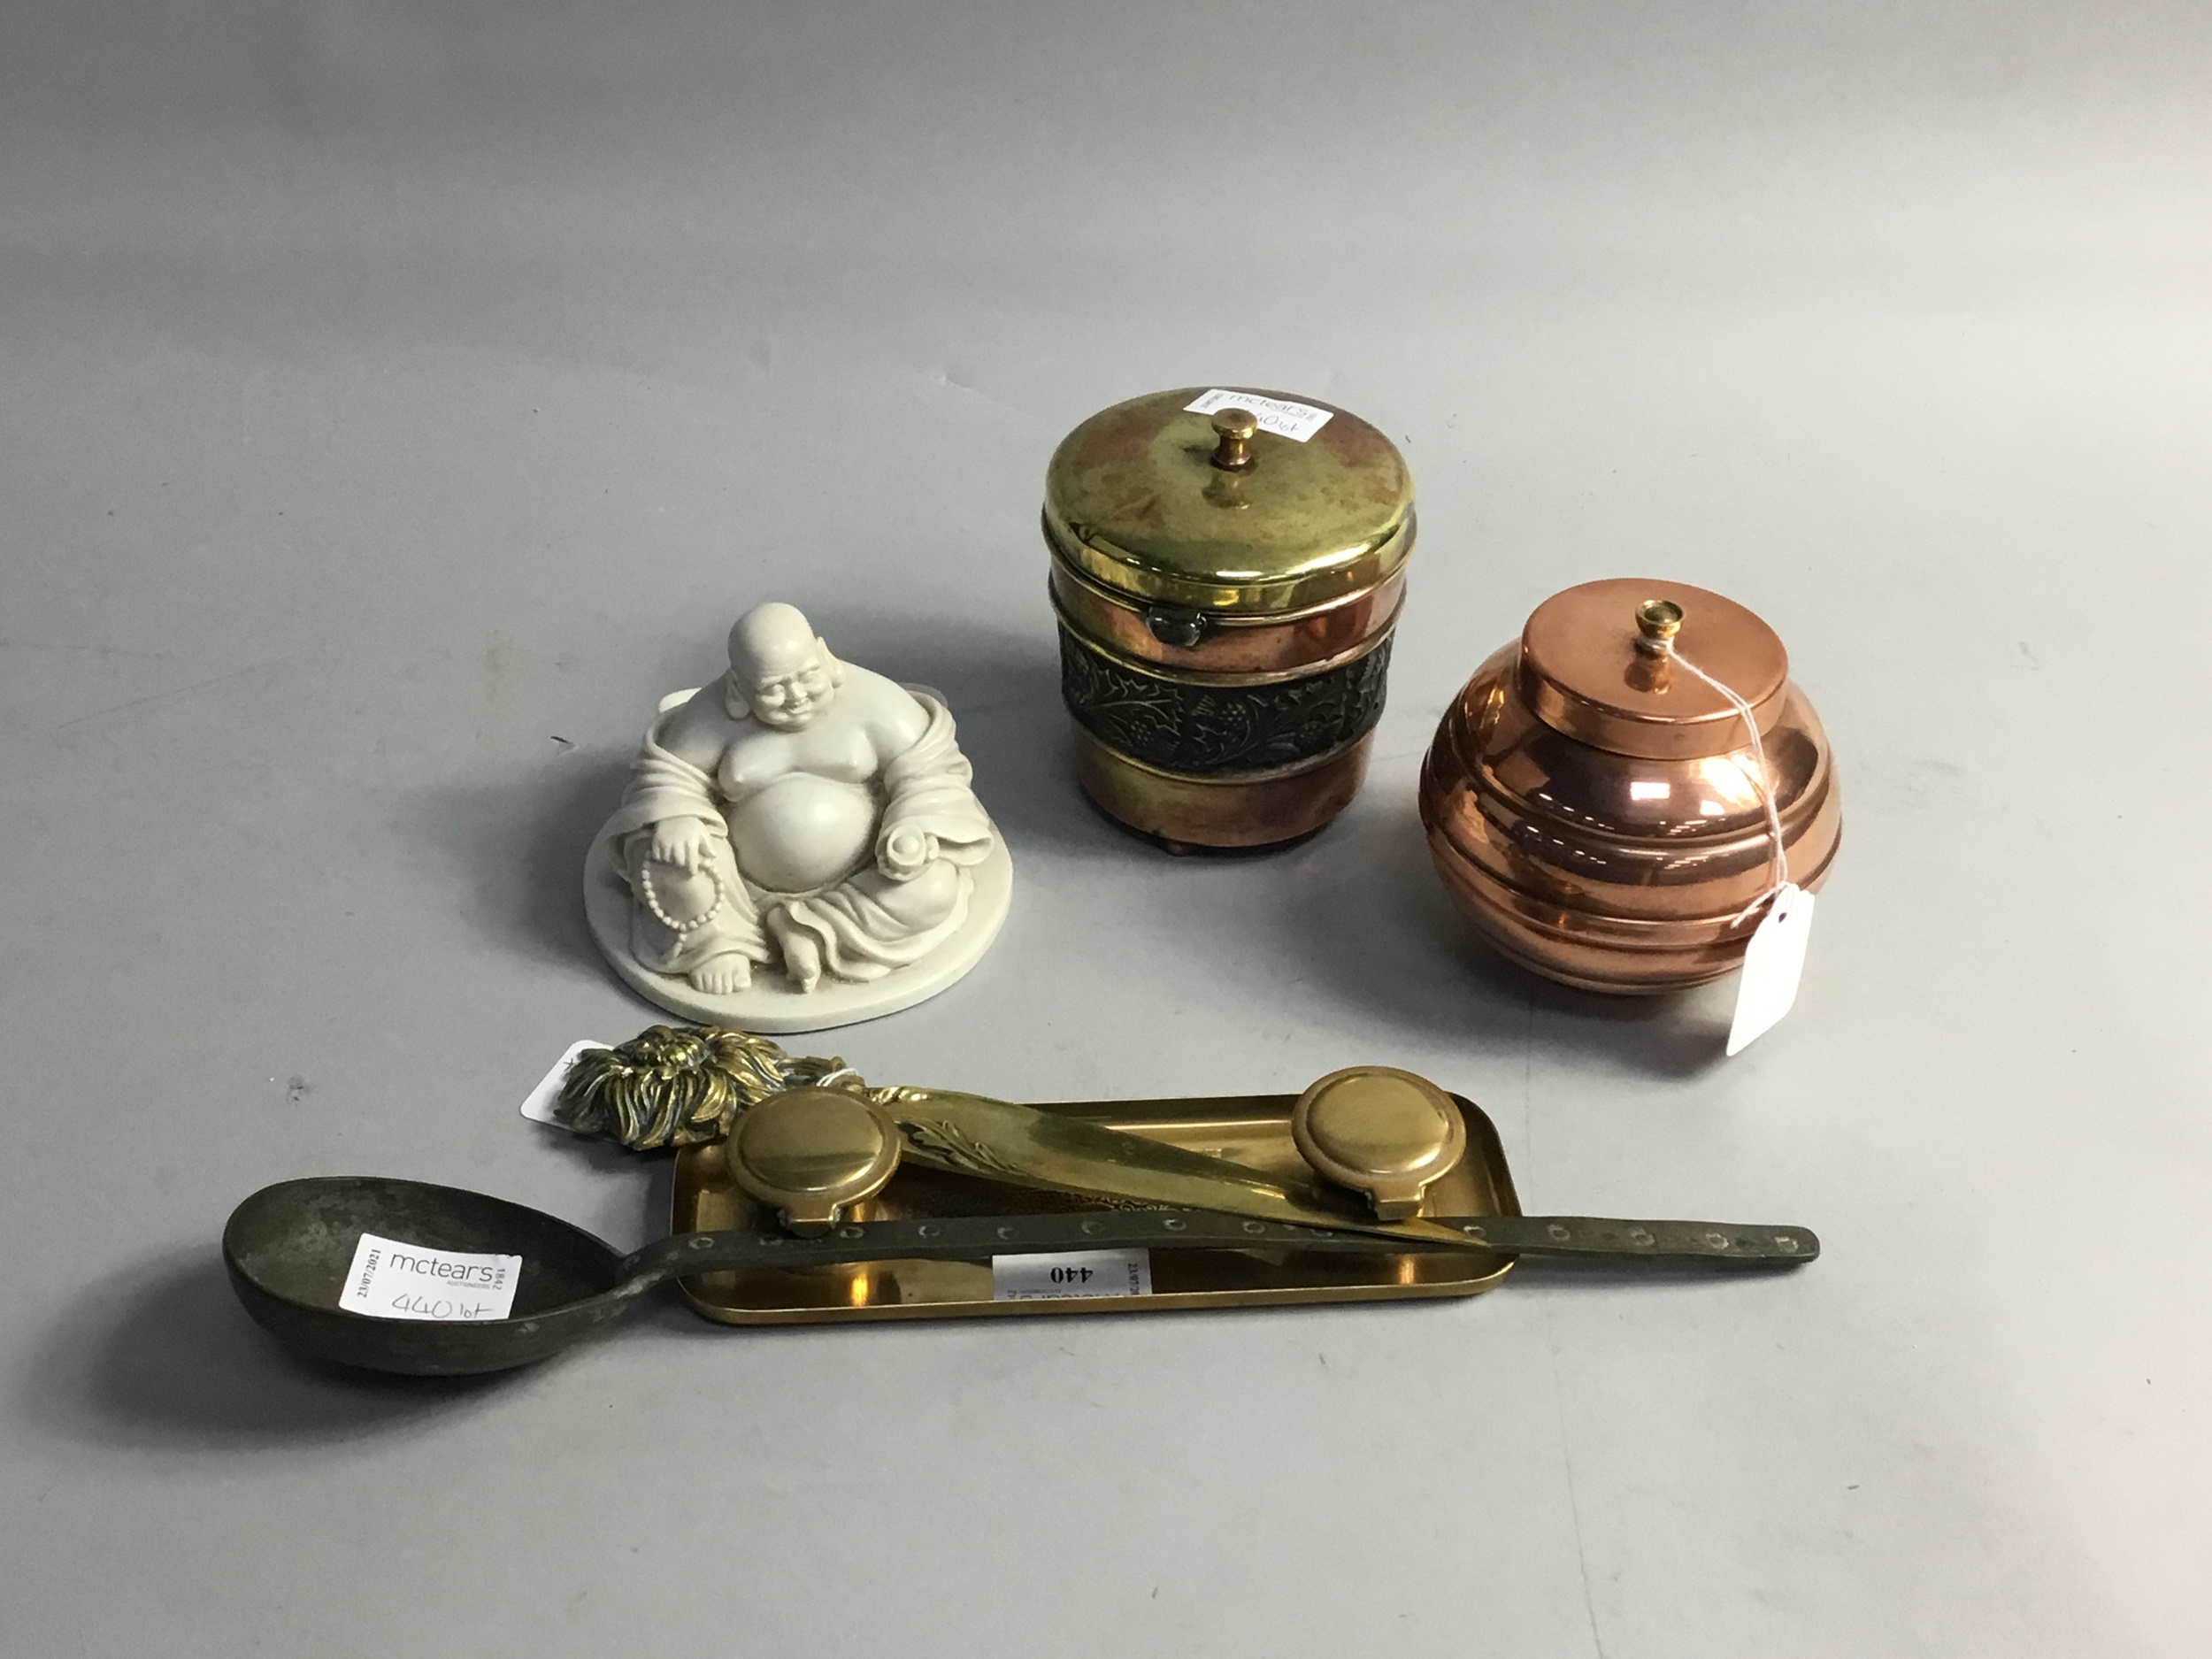 A LATE 19TH CENTURY BRASS DOUBLE INKWELL, ALONG WITH OTHER METAL WARE